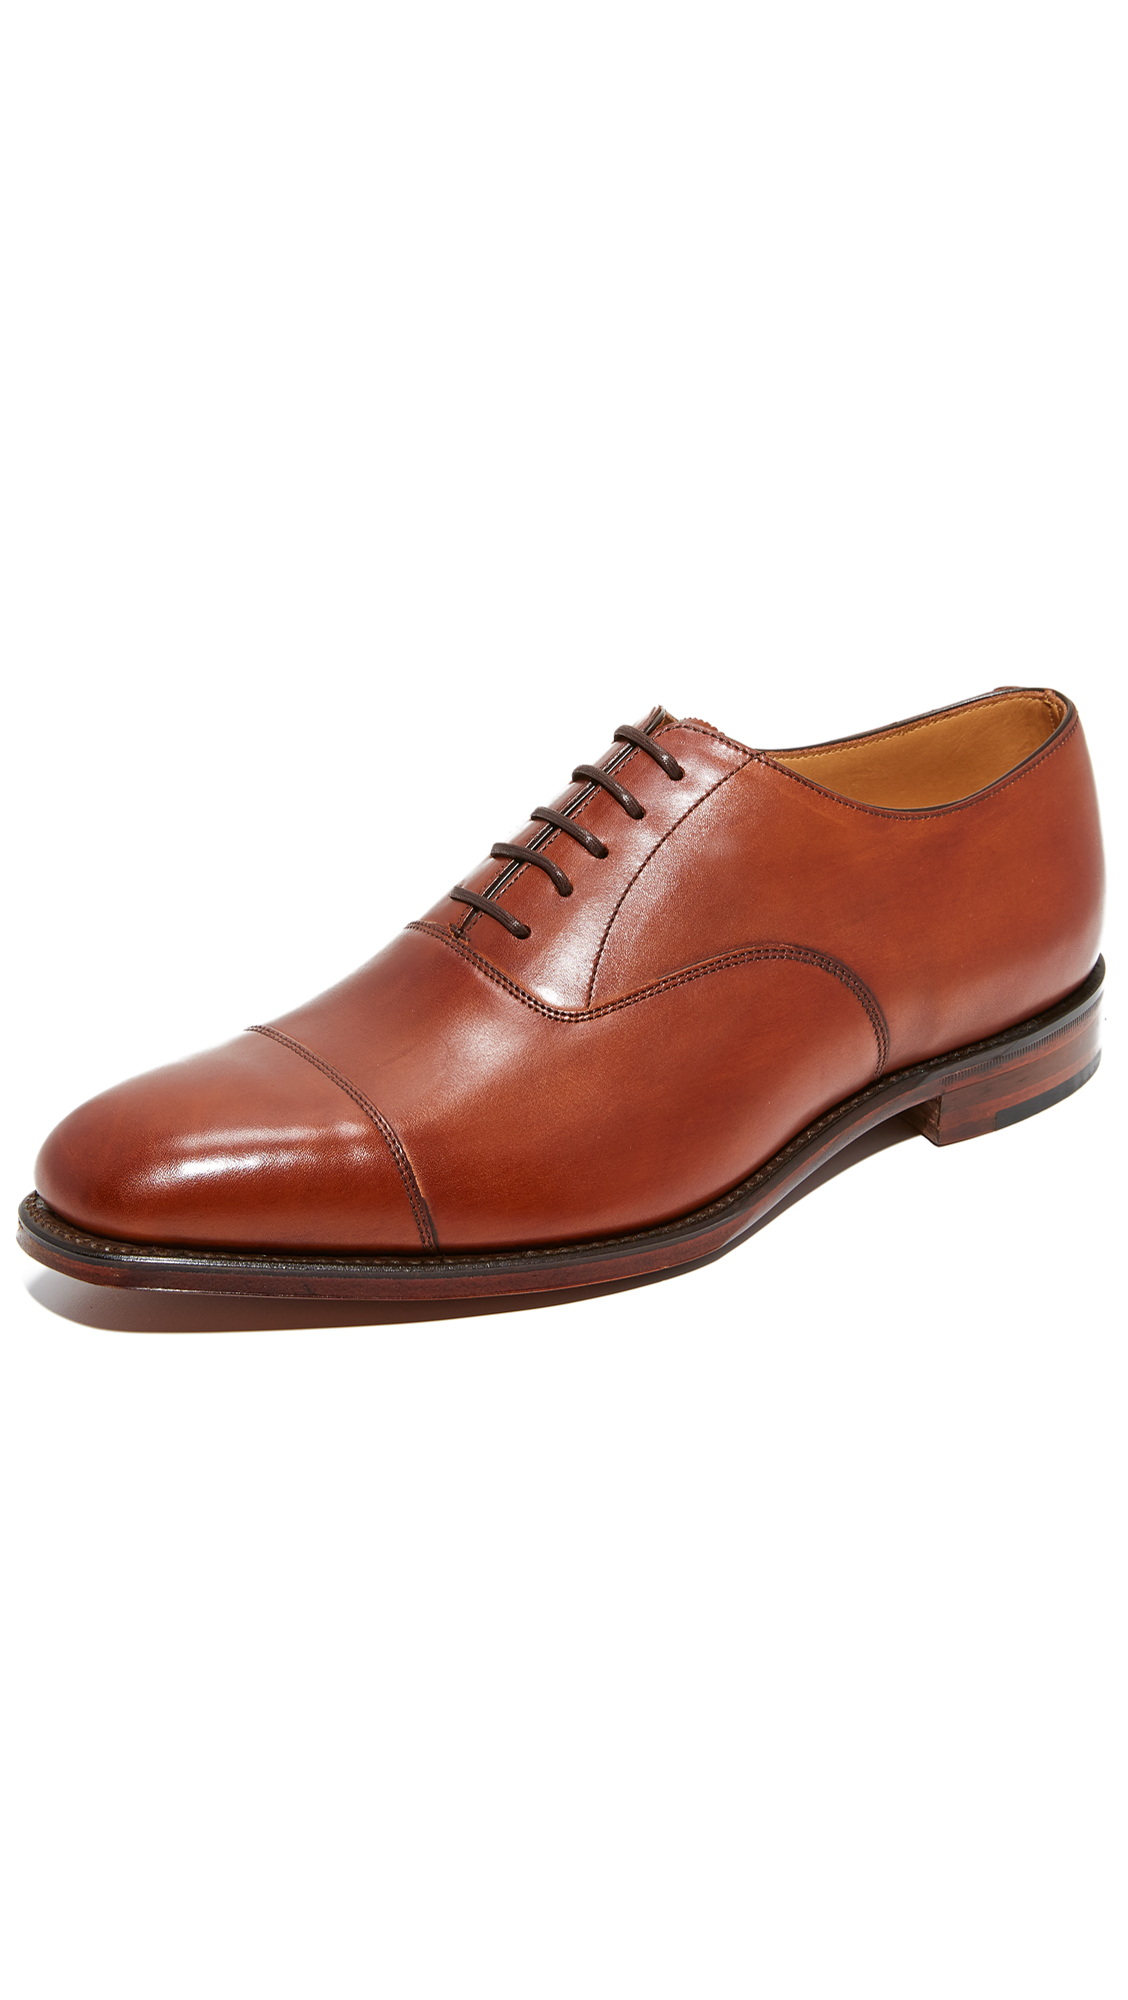 LOAKE 1880 Aldwych Cap Toe Oxfords in Mahogany